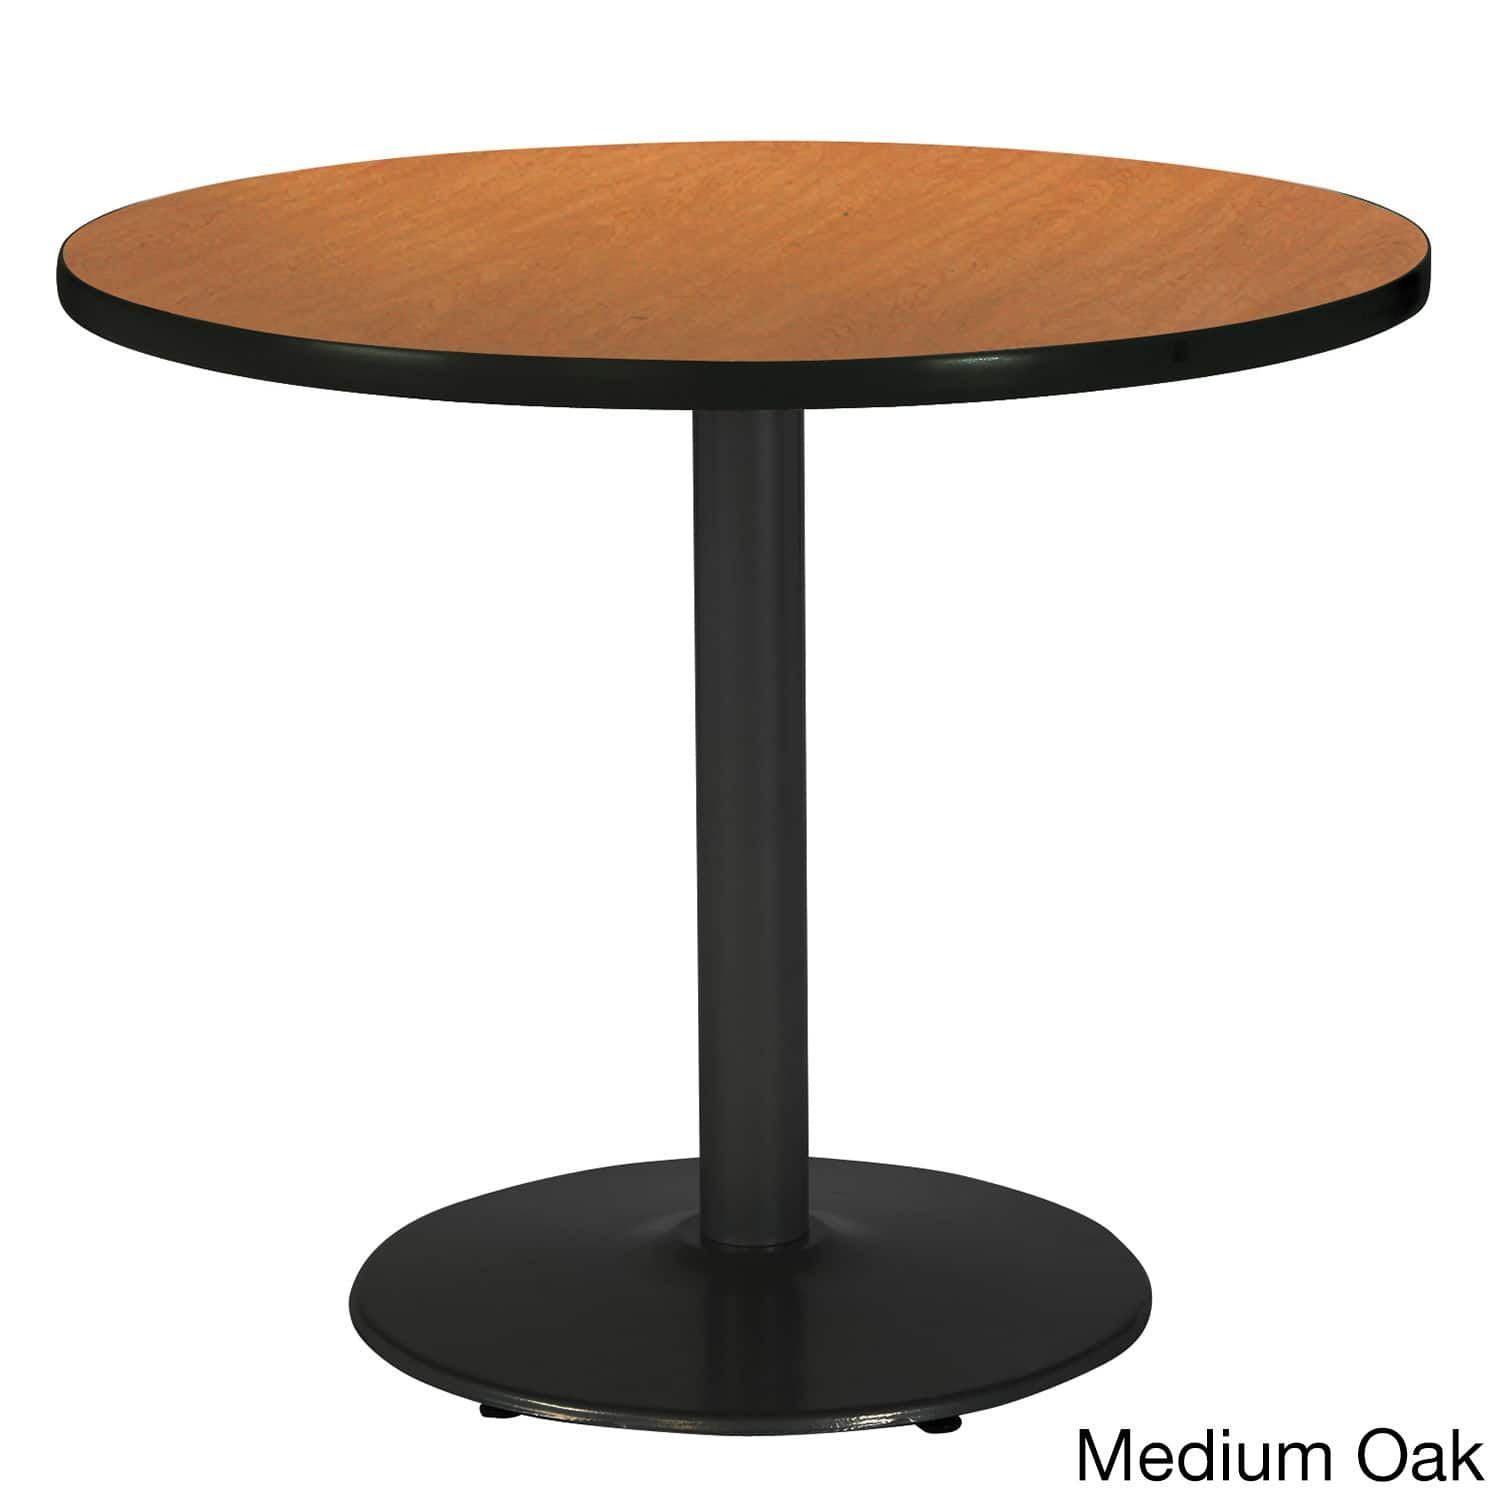 Inch Round Pedestal Table With Round Black Base Products - 42 inch round office table